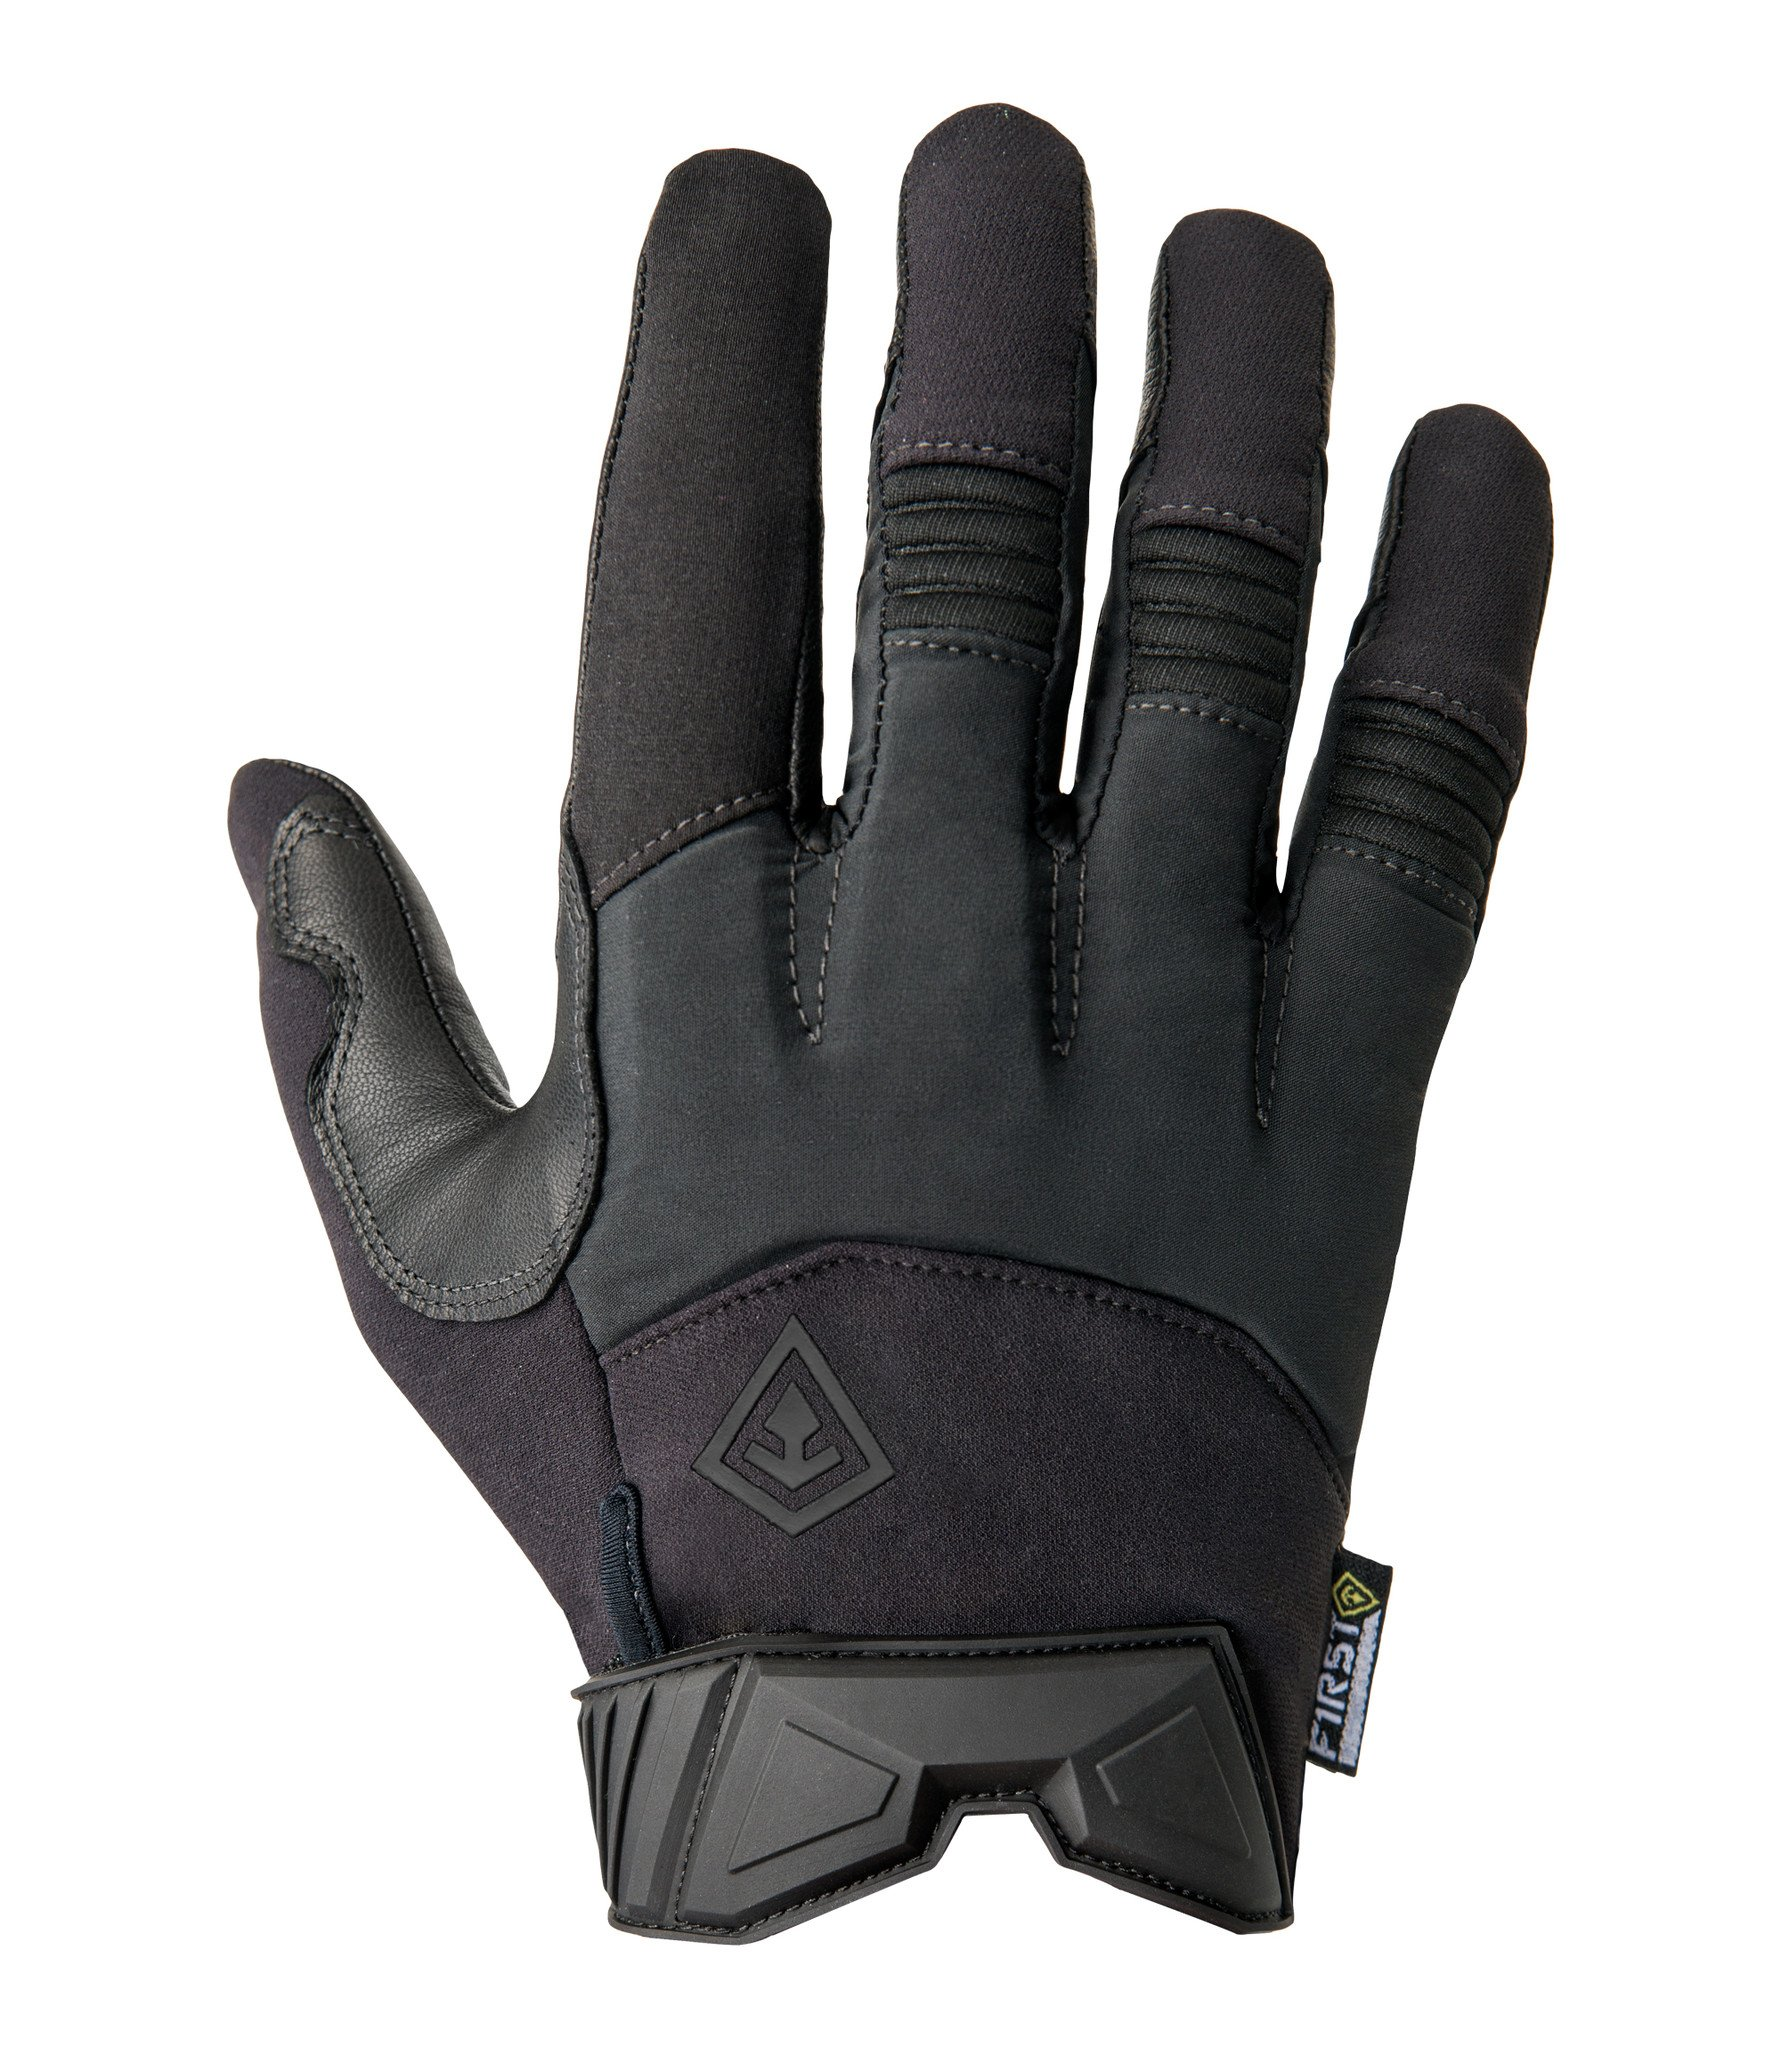 Medium Duty Padded Glove